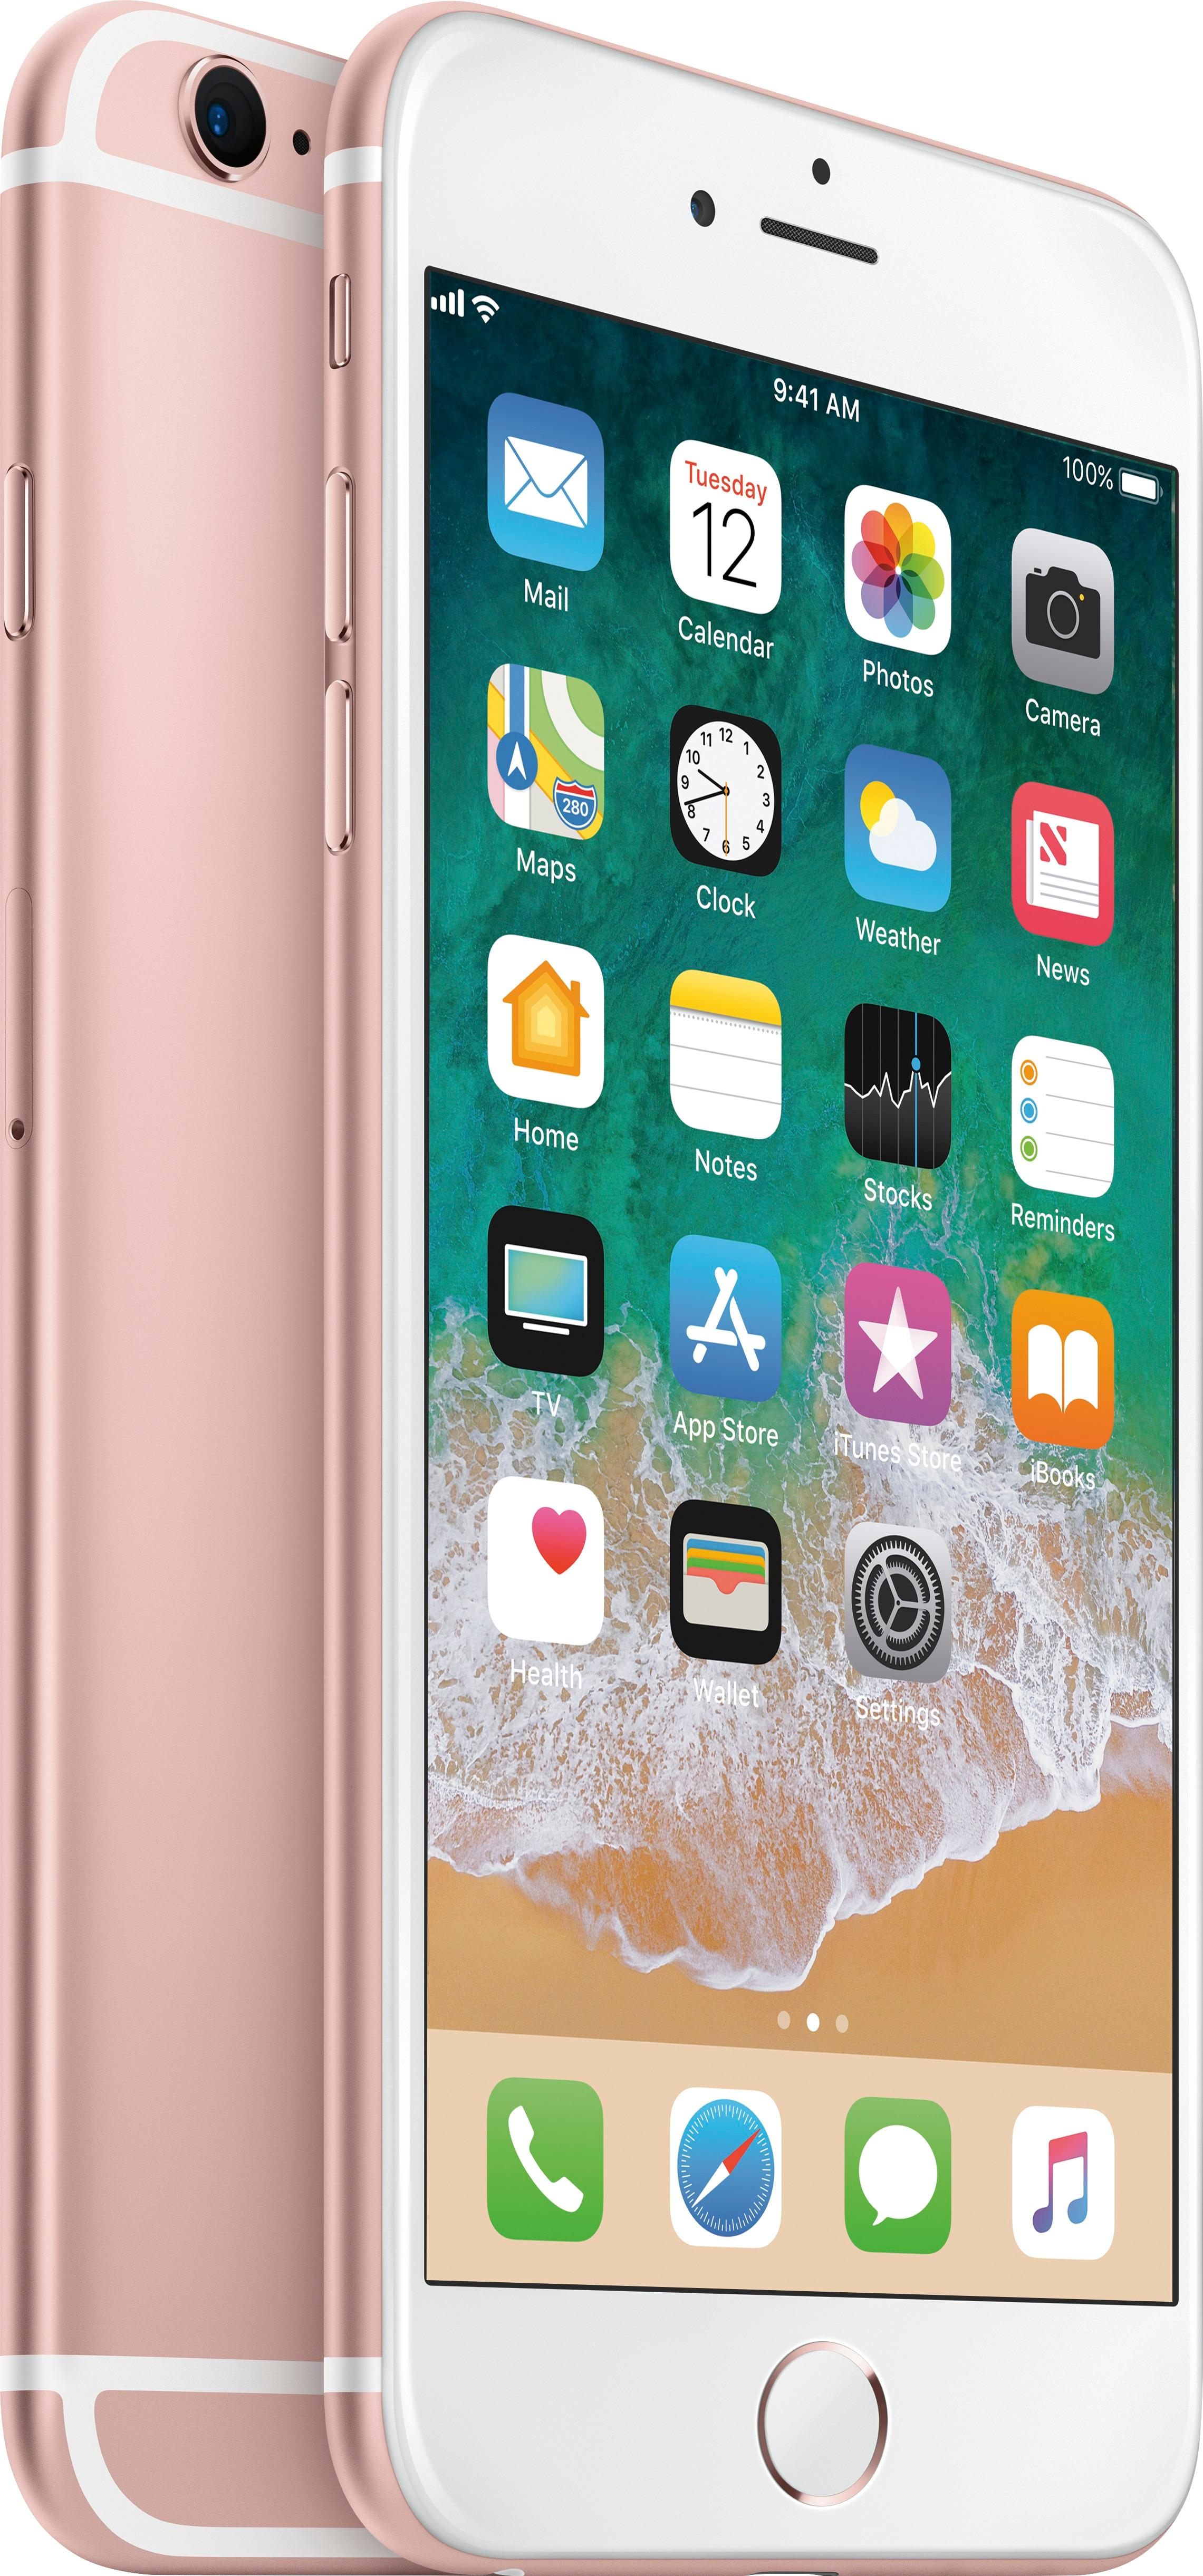 Iphone 6 Ne Kadar Total Wireless Apple Iphone 6s Plus 4g Lte With 32gb Memory Prepaid Cell Phone Rose Gold